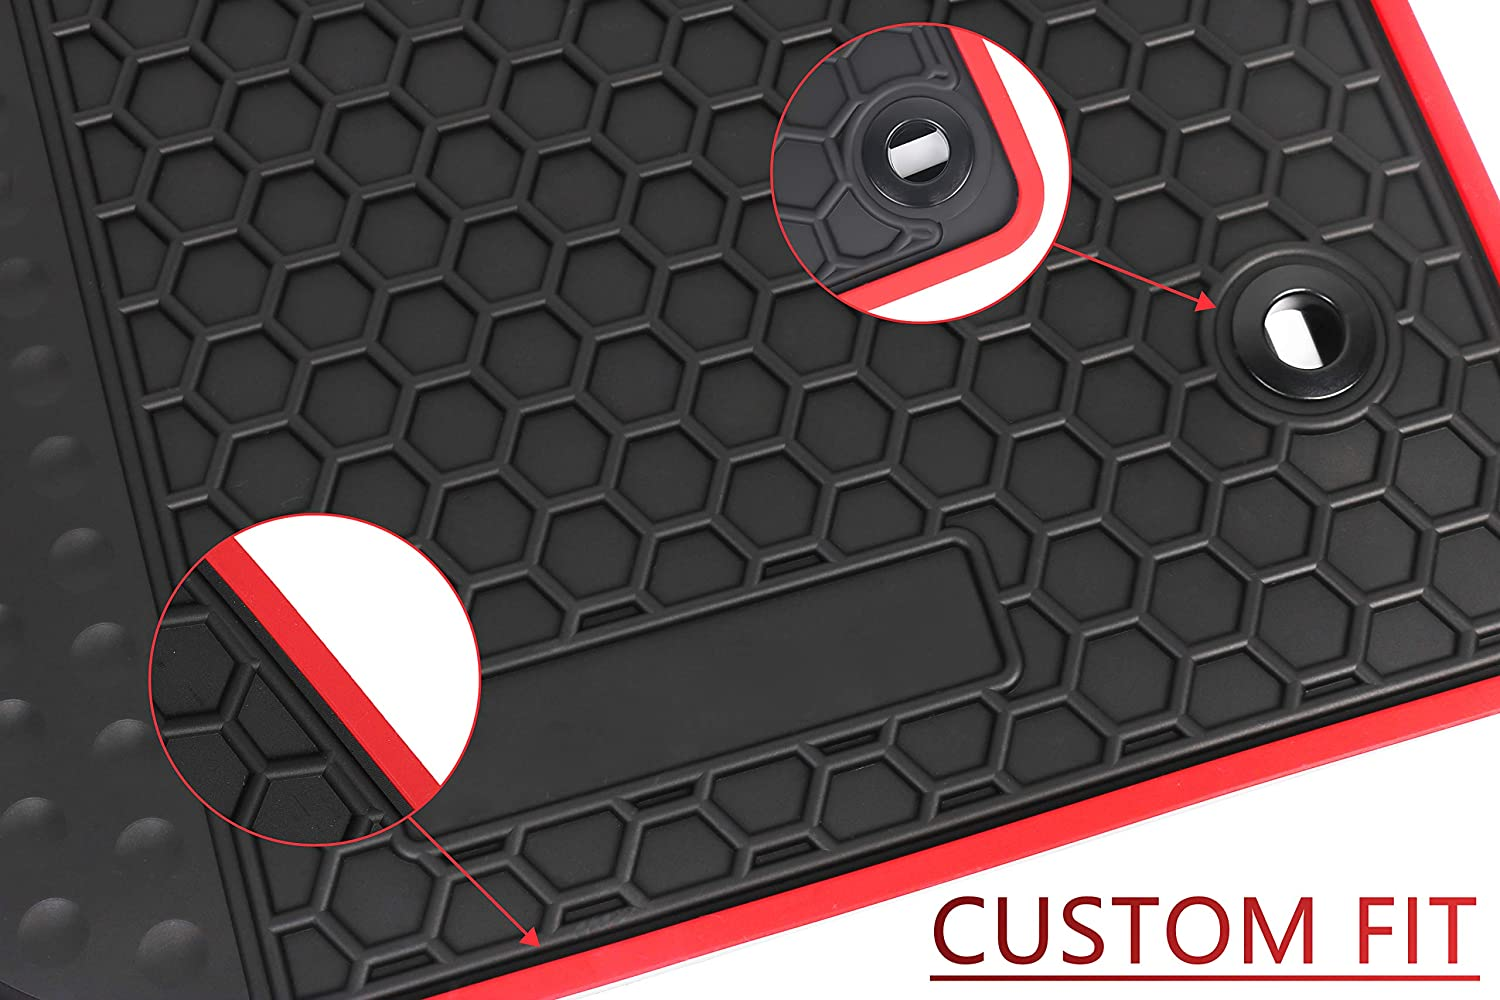 HD-Mart Car Rubber Floor Mat for Toyota Camry 7th 2012-2013-2014-2015-2016-2017 Custom Fit Full Black Rubber Car Floor Liners Set All Weather Protection Heavy Duty Odorless